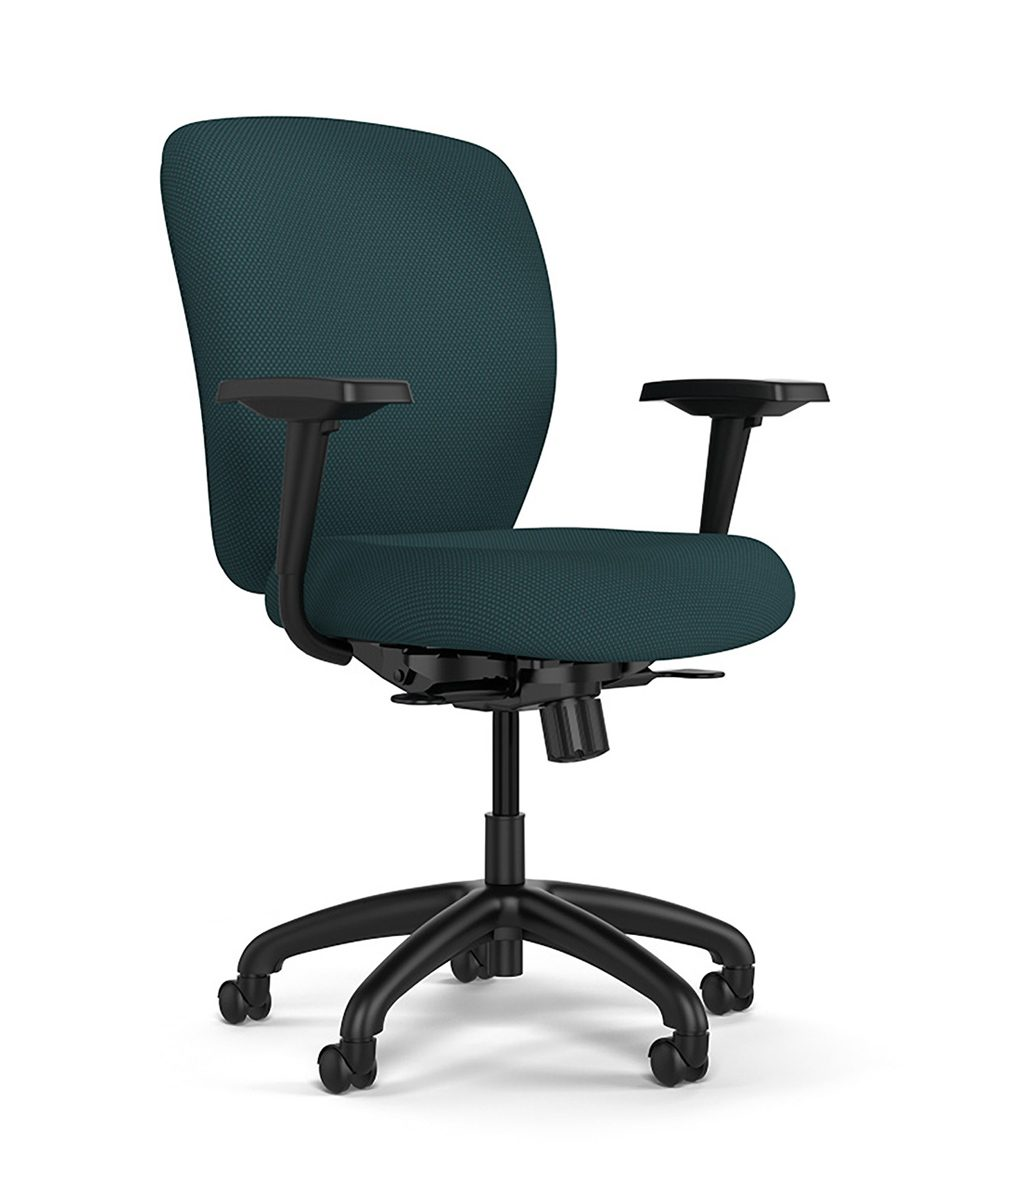 Office Chair With Adjustable Arms Knack Task Work Chairs Stools Seating Sitonit Seating